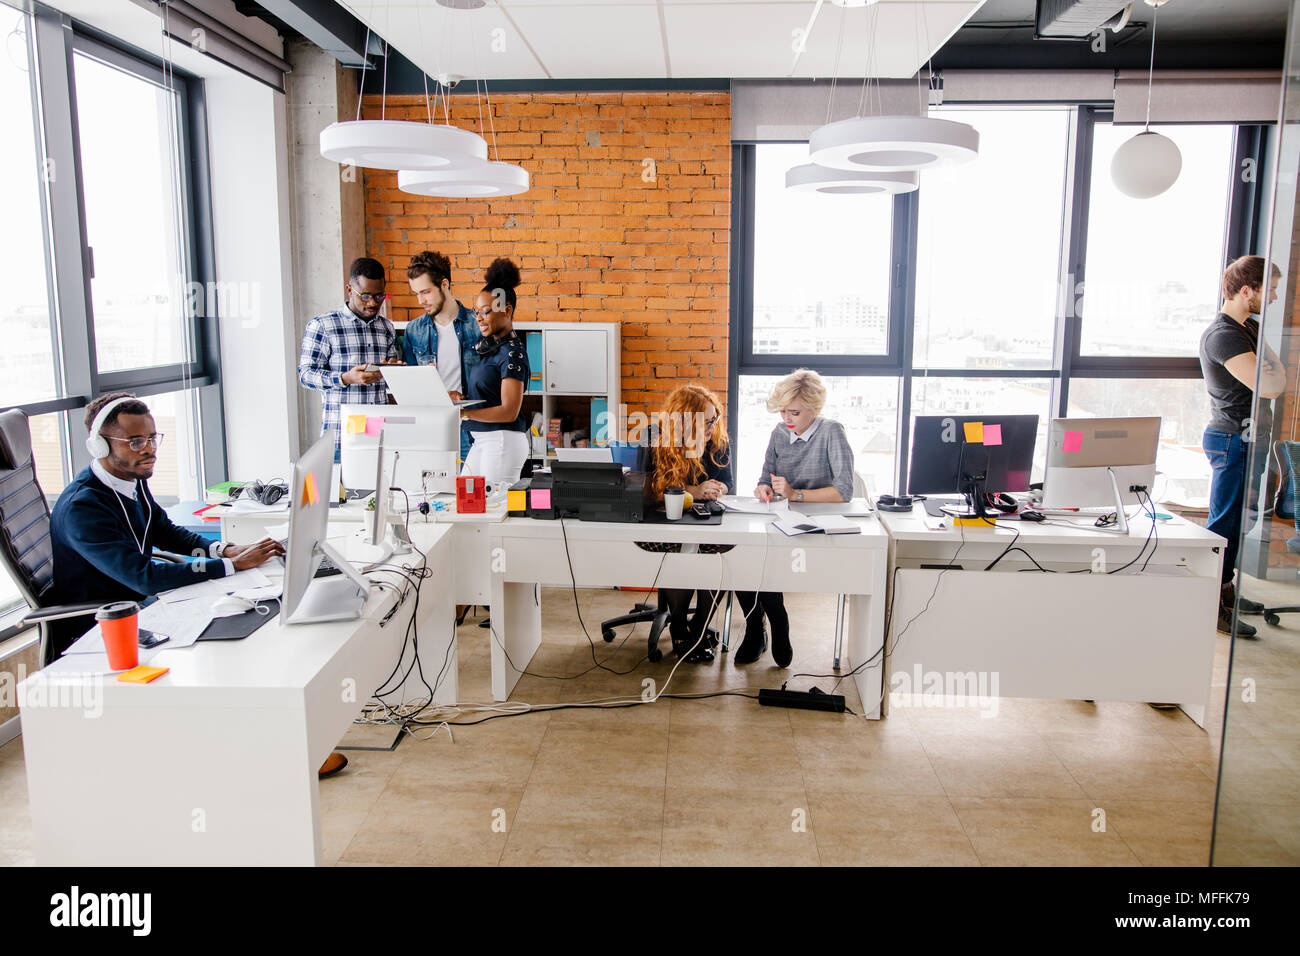 concept of altruistic activity. loft style office is full of young ambitious volunteers - Stock Image